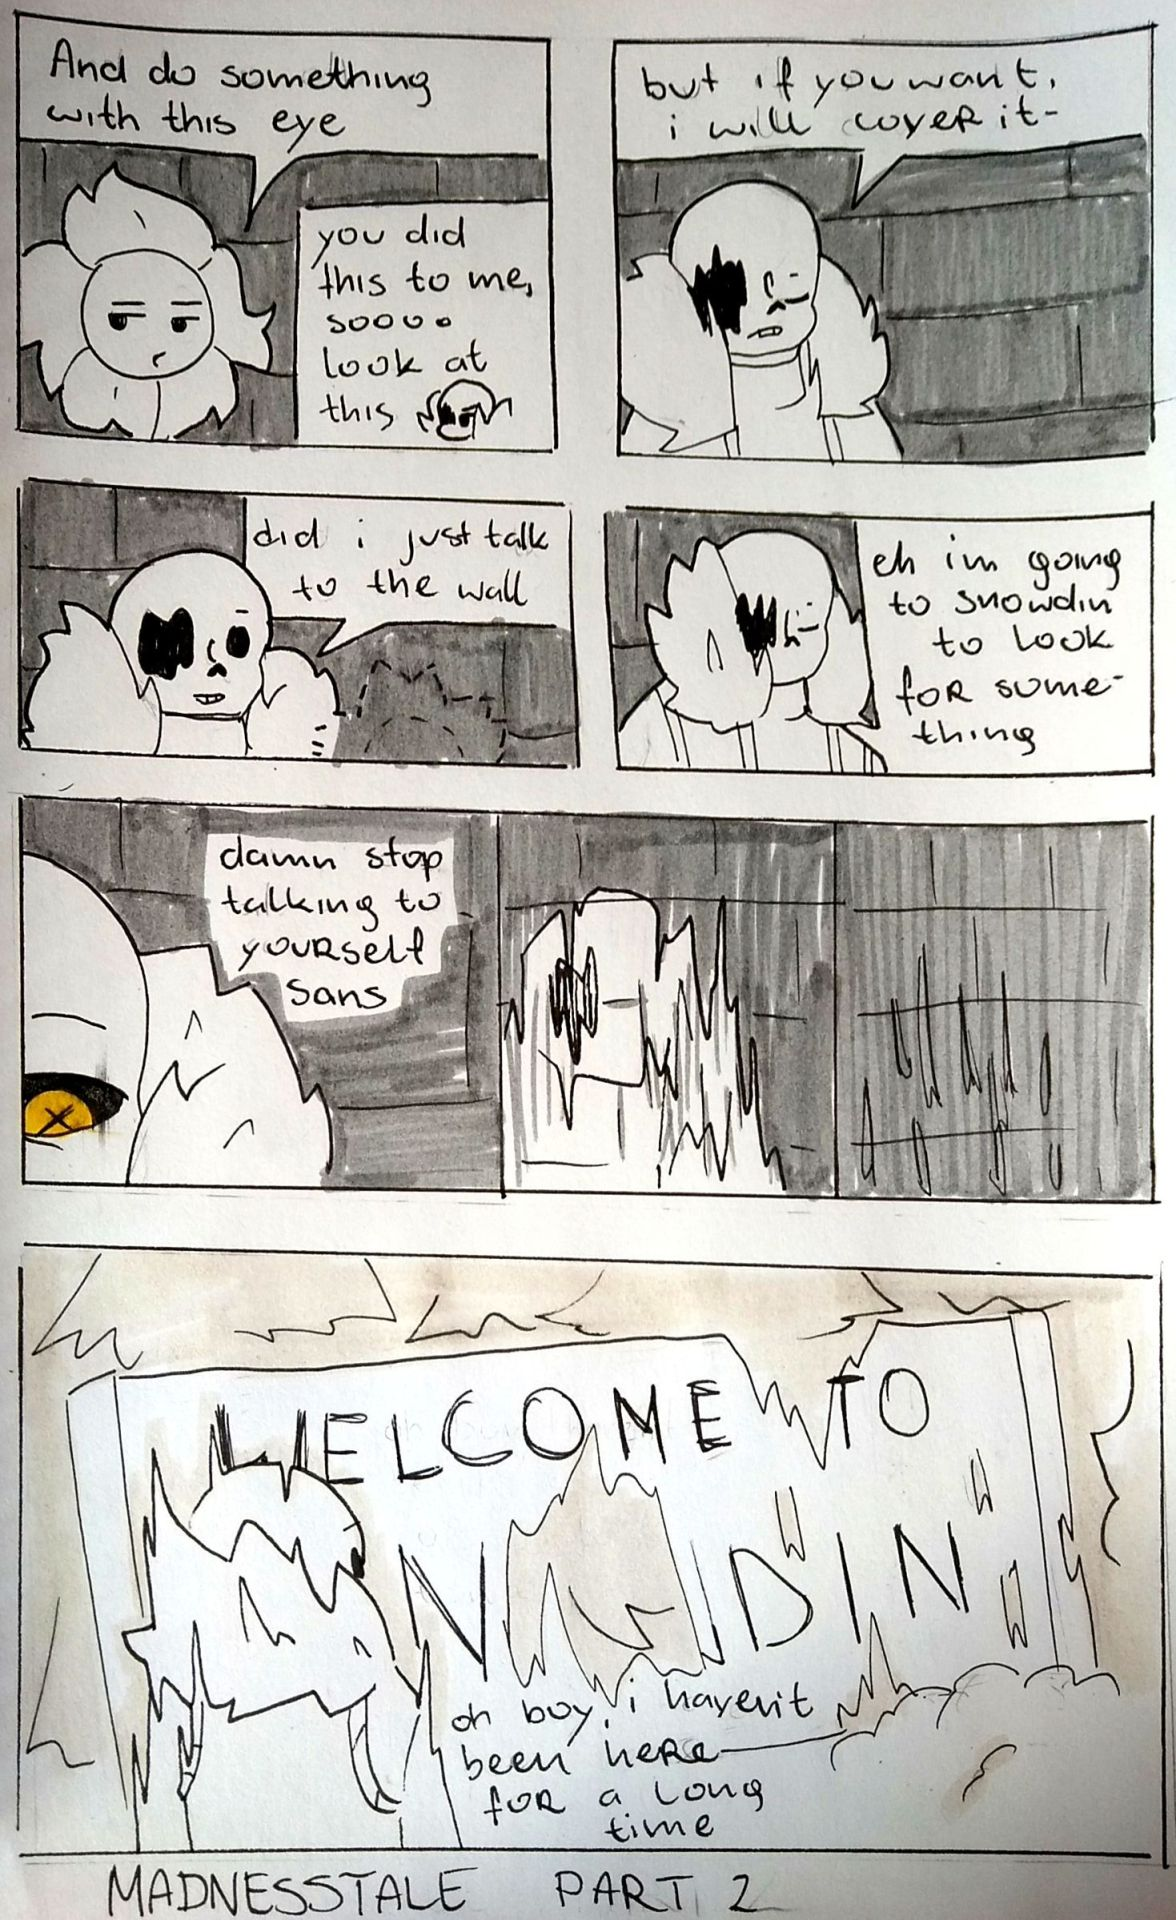 MADNESSTALE PART 2ah fuck this shit im out! I dont know how to make__next__ or other button FUCK!from now on I throw in only such funny scenes when Madness sans will visit AU's #madnesstale#underta#sans#madnesssans#snowdin#fuckthisshit